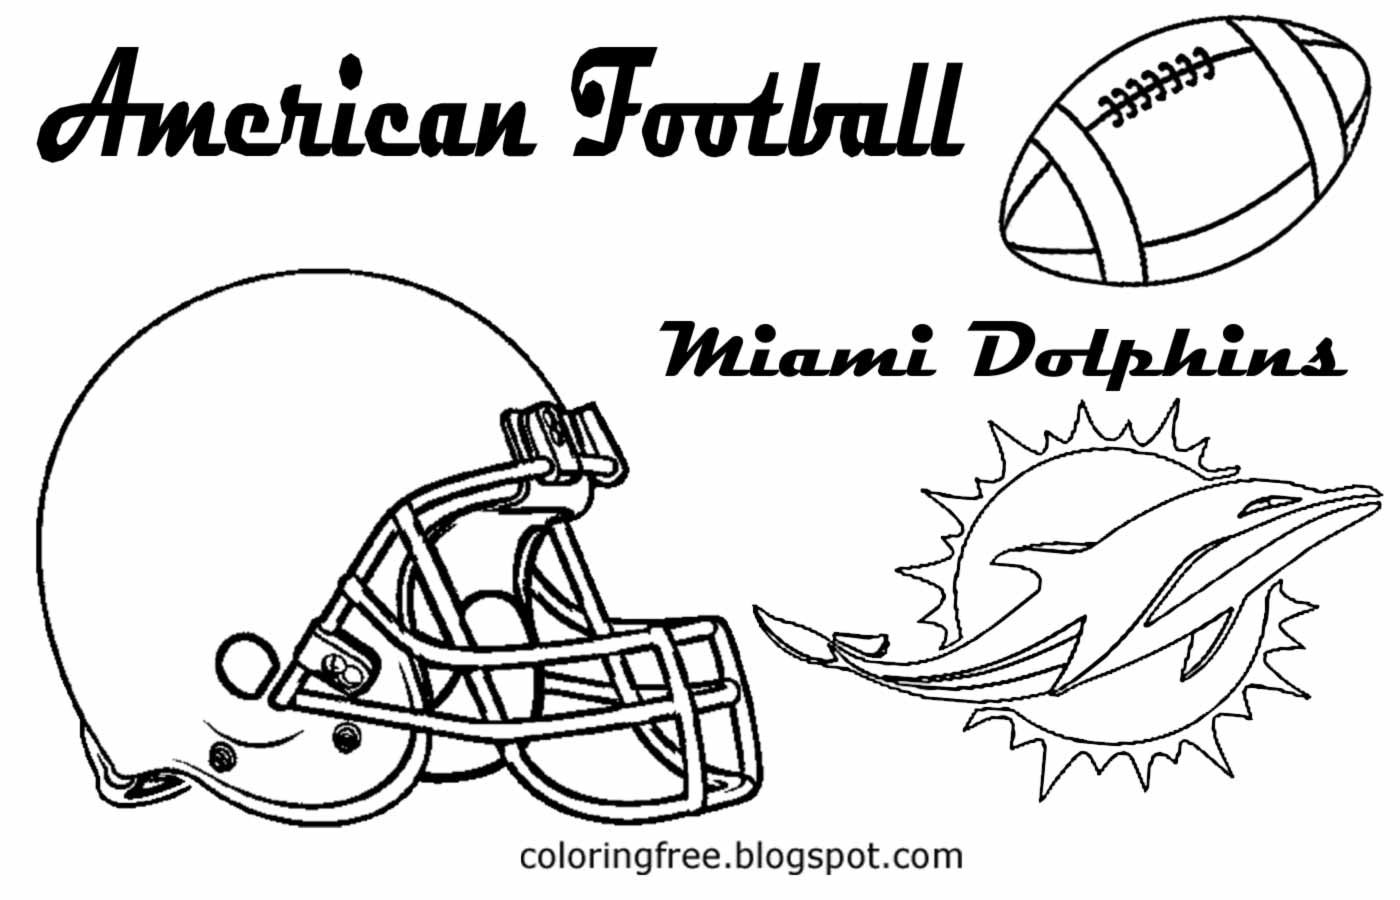 miami dolphins coloring page - free coloring pages printable pictures to color kids